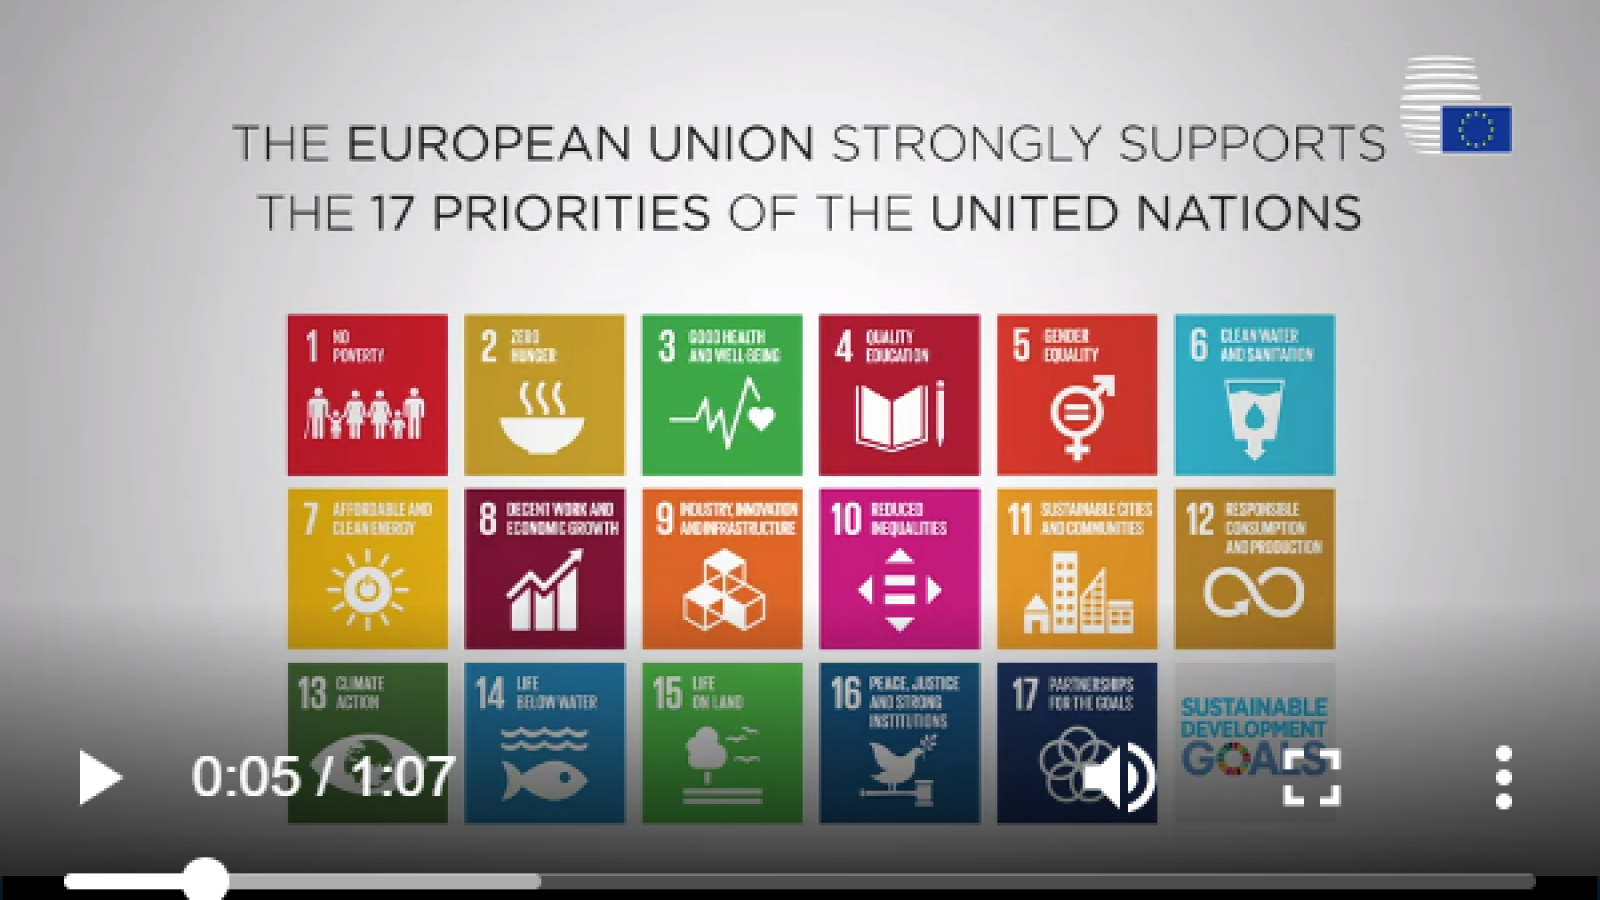 Towards a Sustainable Europe by 2030